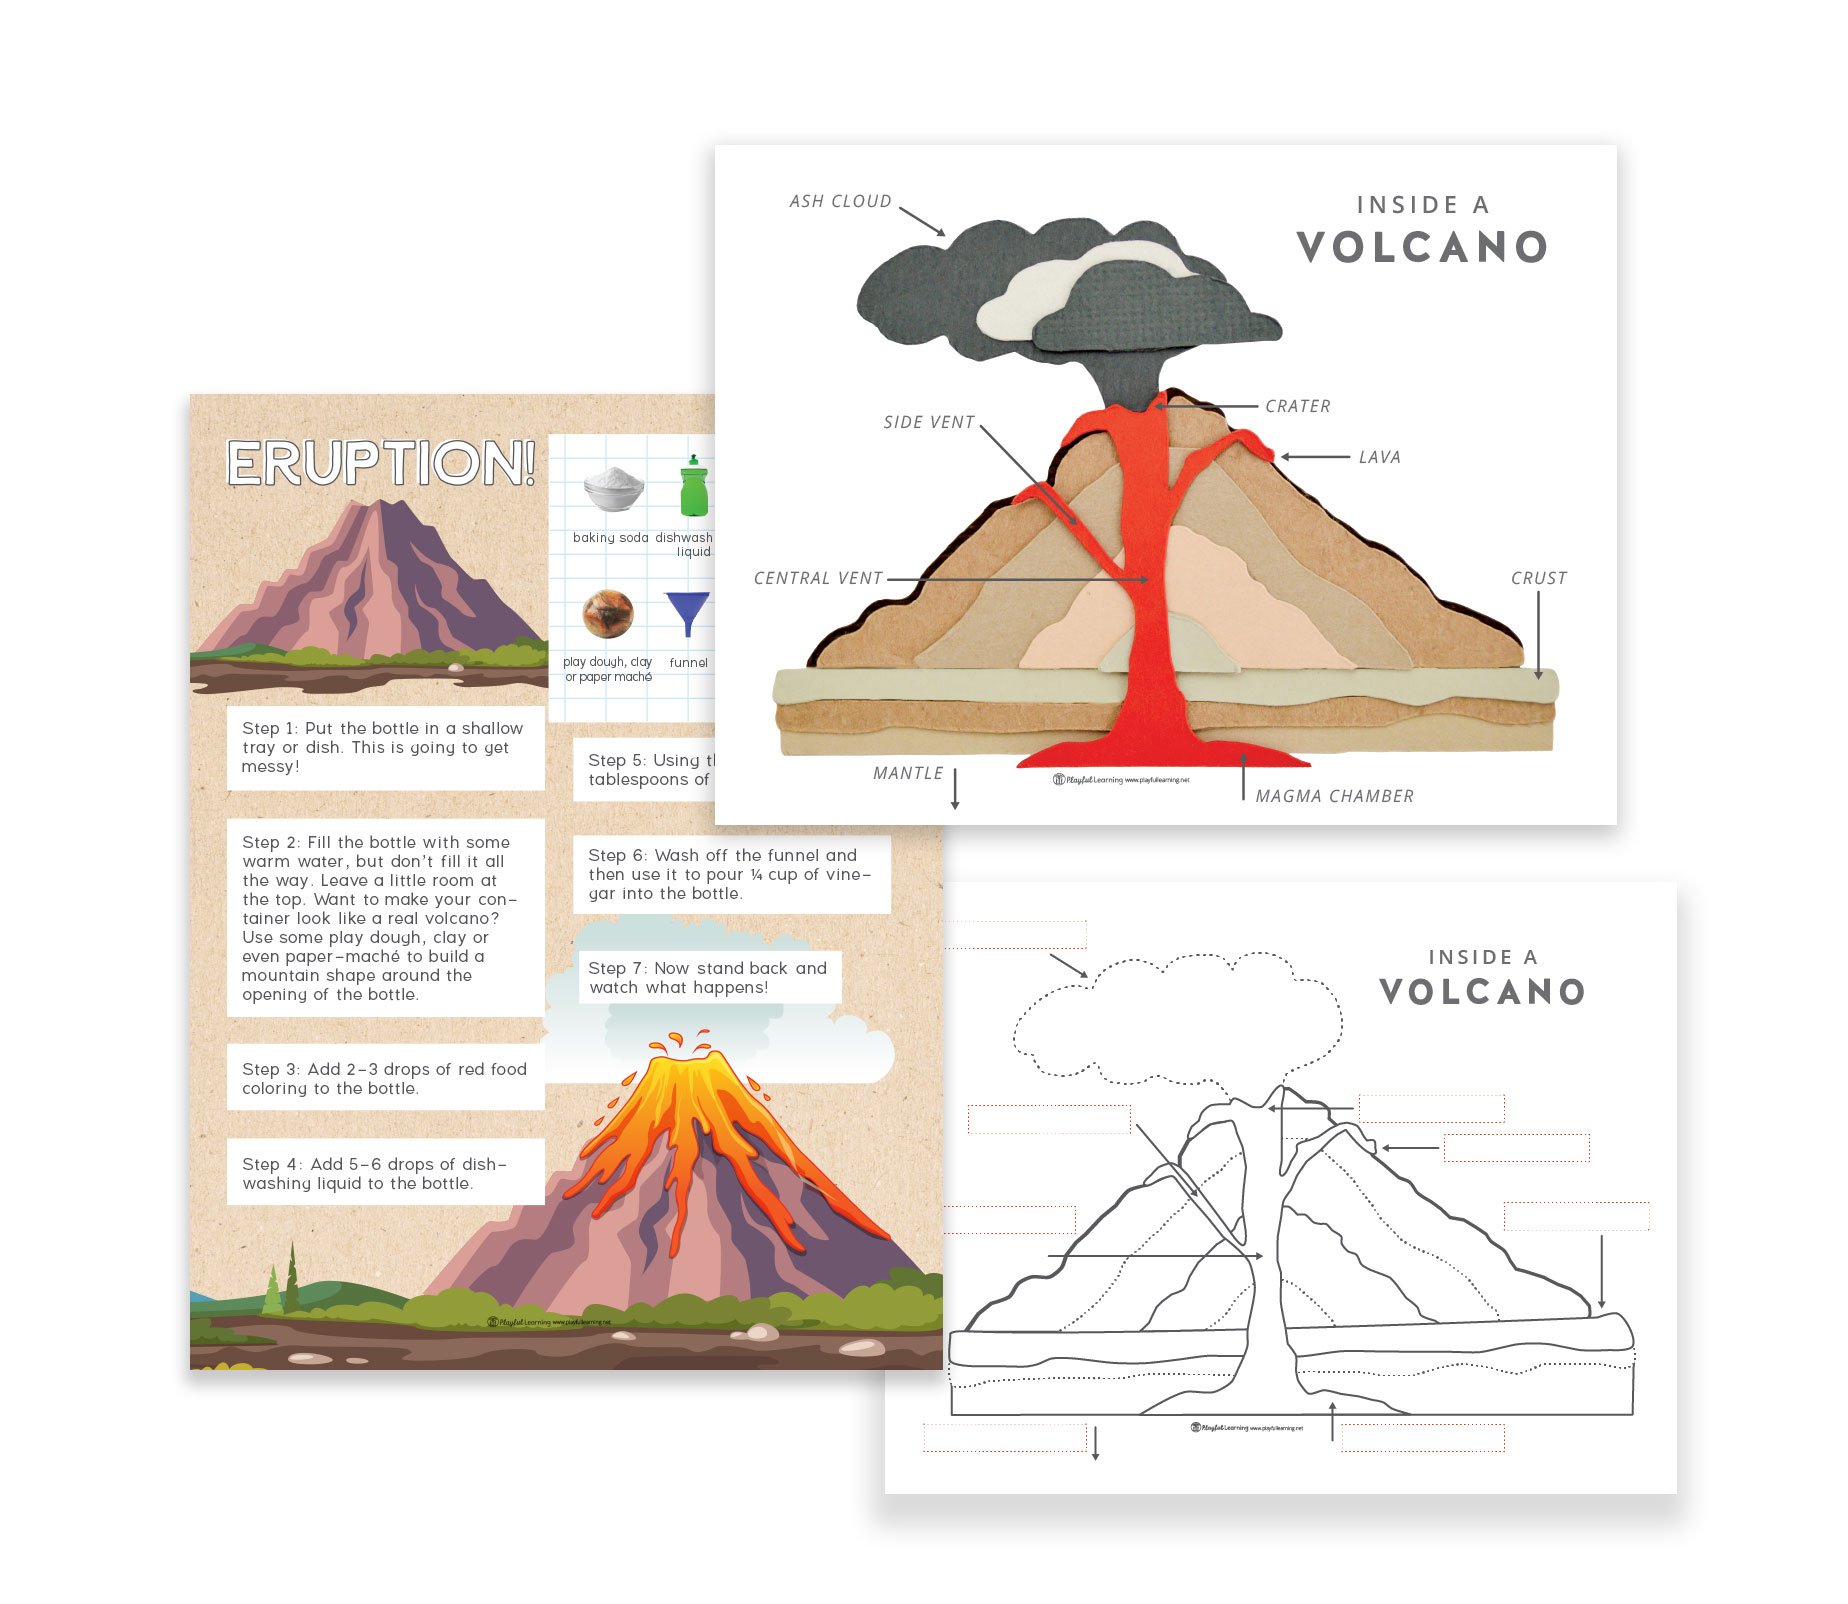 Volcano Playful Learning Volcanoes Diagram Ash Cloud Small Pieces Of Rock Minerals And Volcanic Glass That Are Discharged Into The Area During An Eruption Then Carried Further By Wind